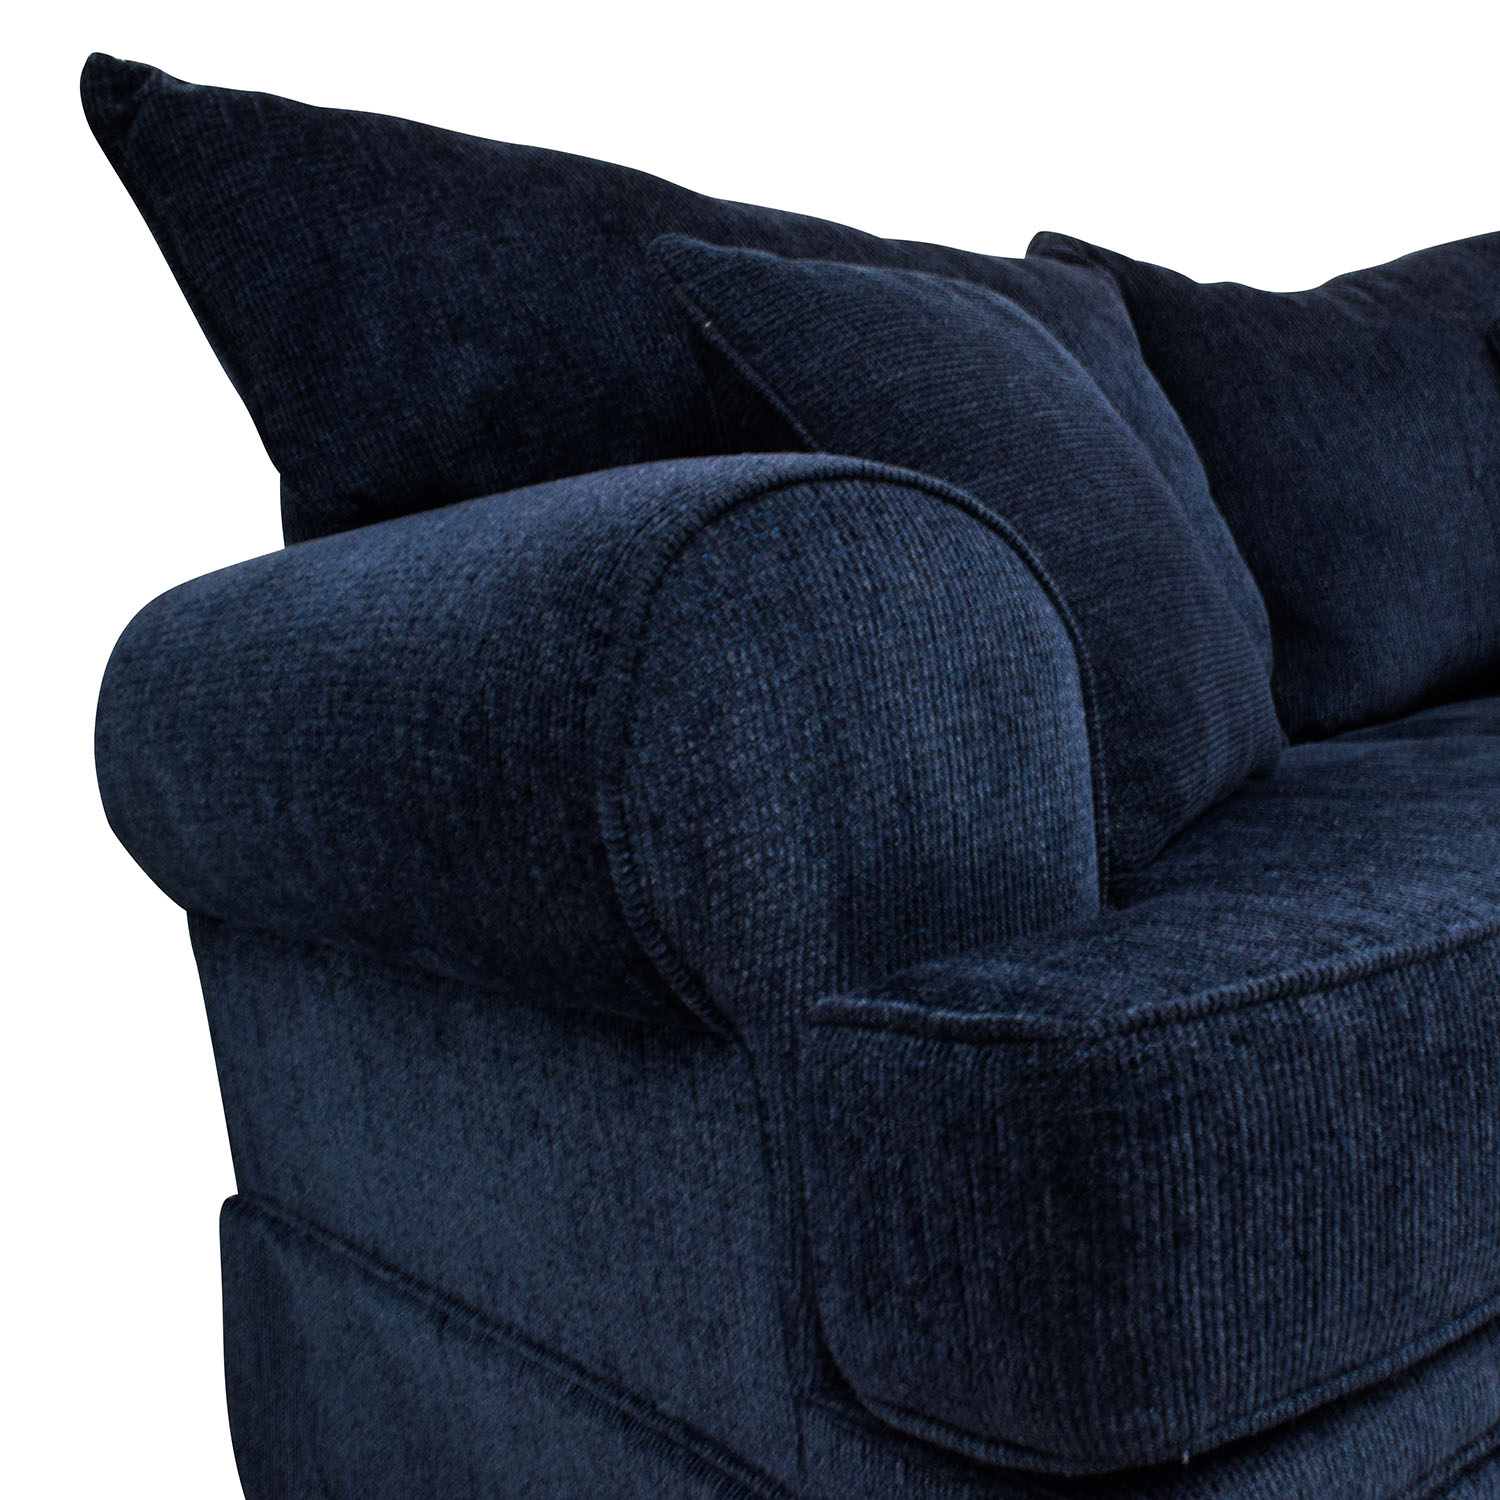 buy Bobs Furniture Bobs Furniture Deep Blue Loveseat online